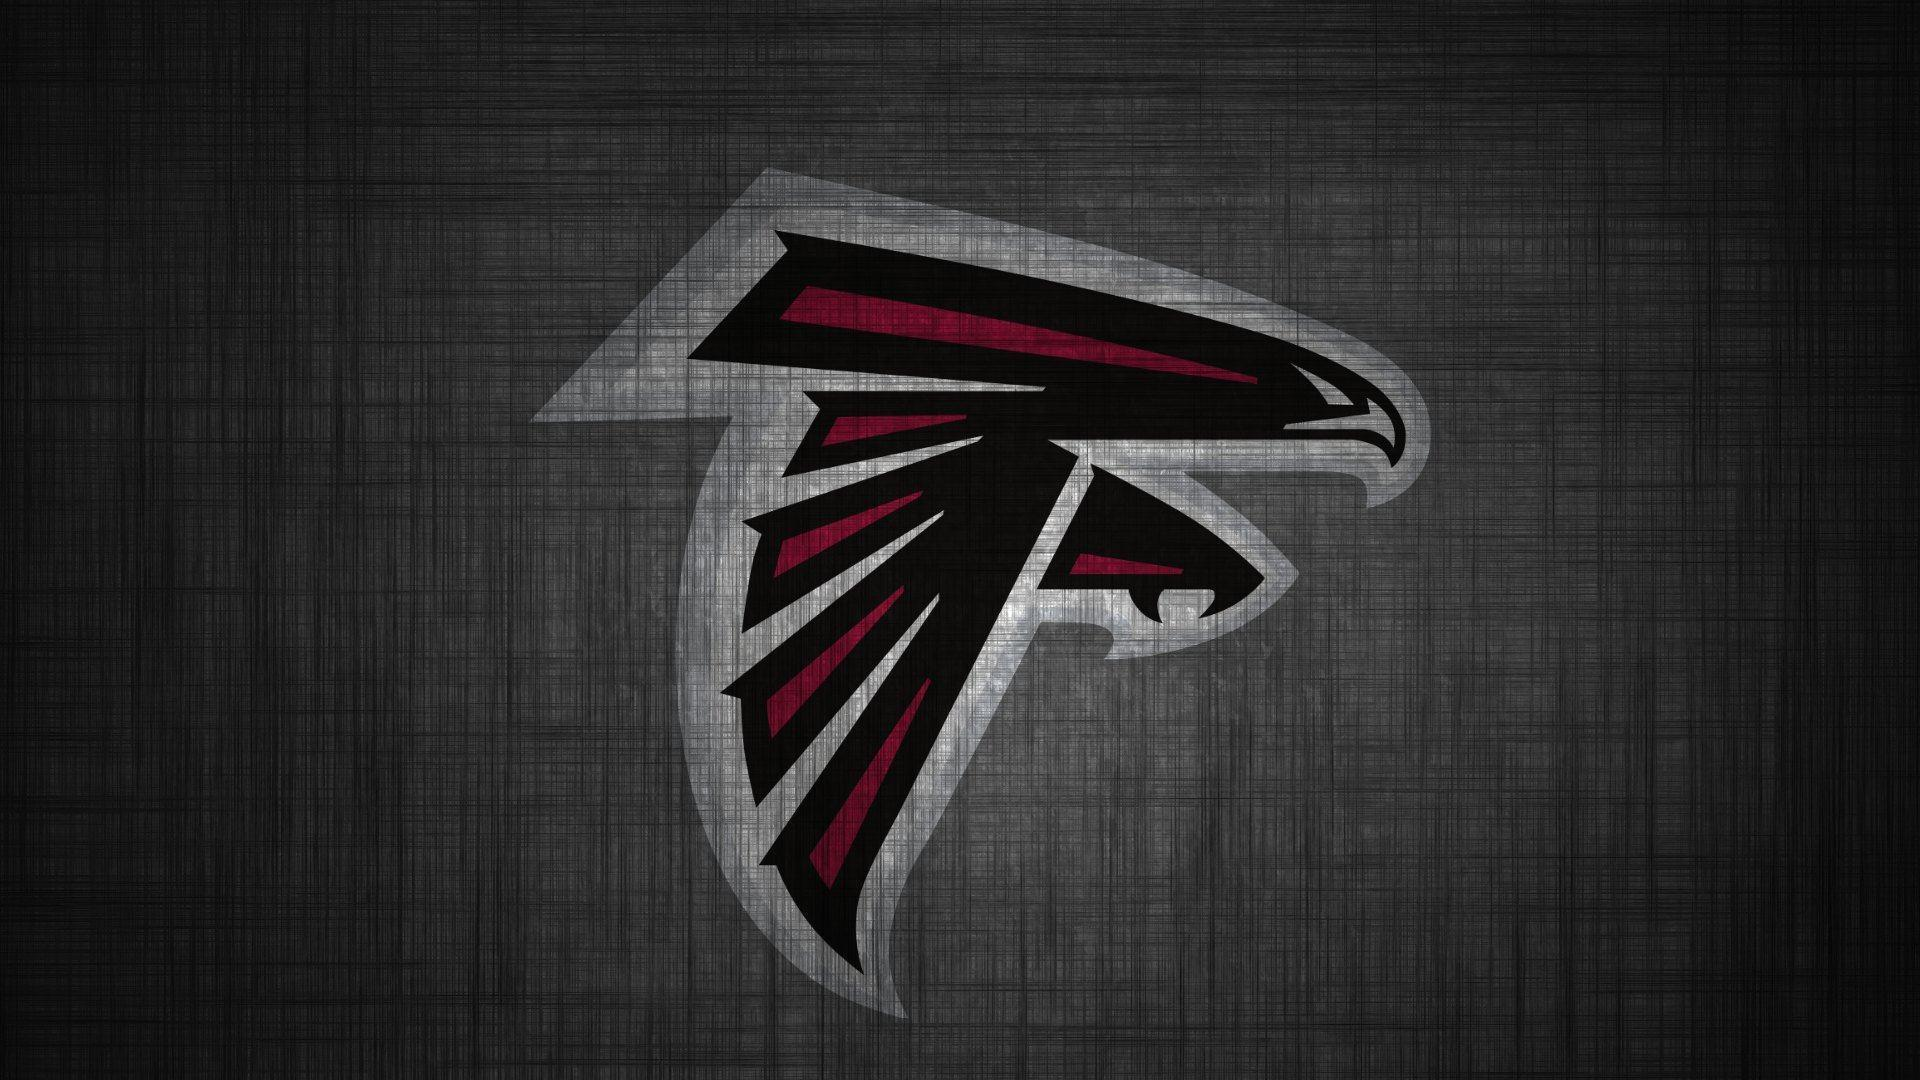 Falcons Wallpaper: Atlanta Falcons Wallpapers